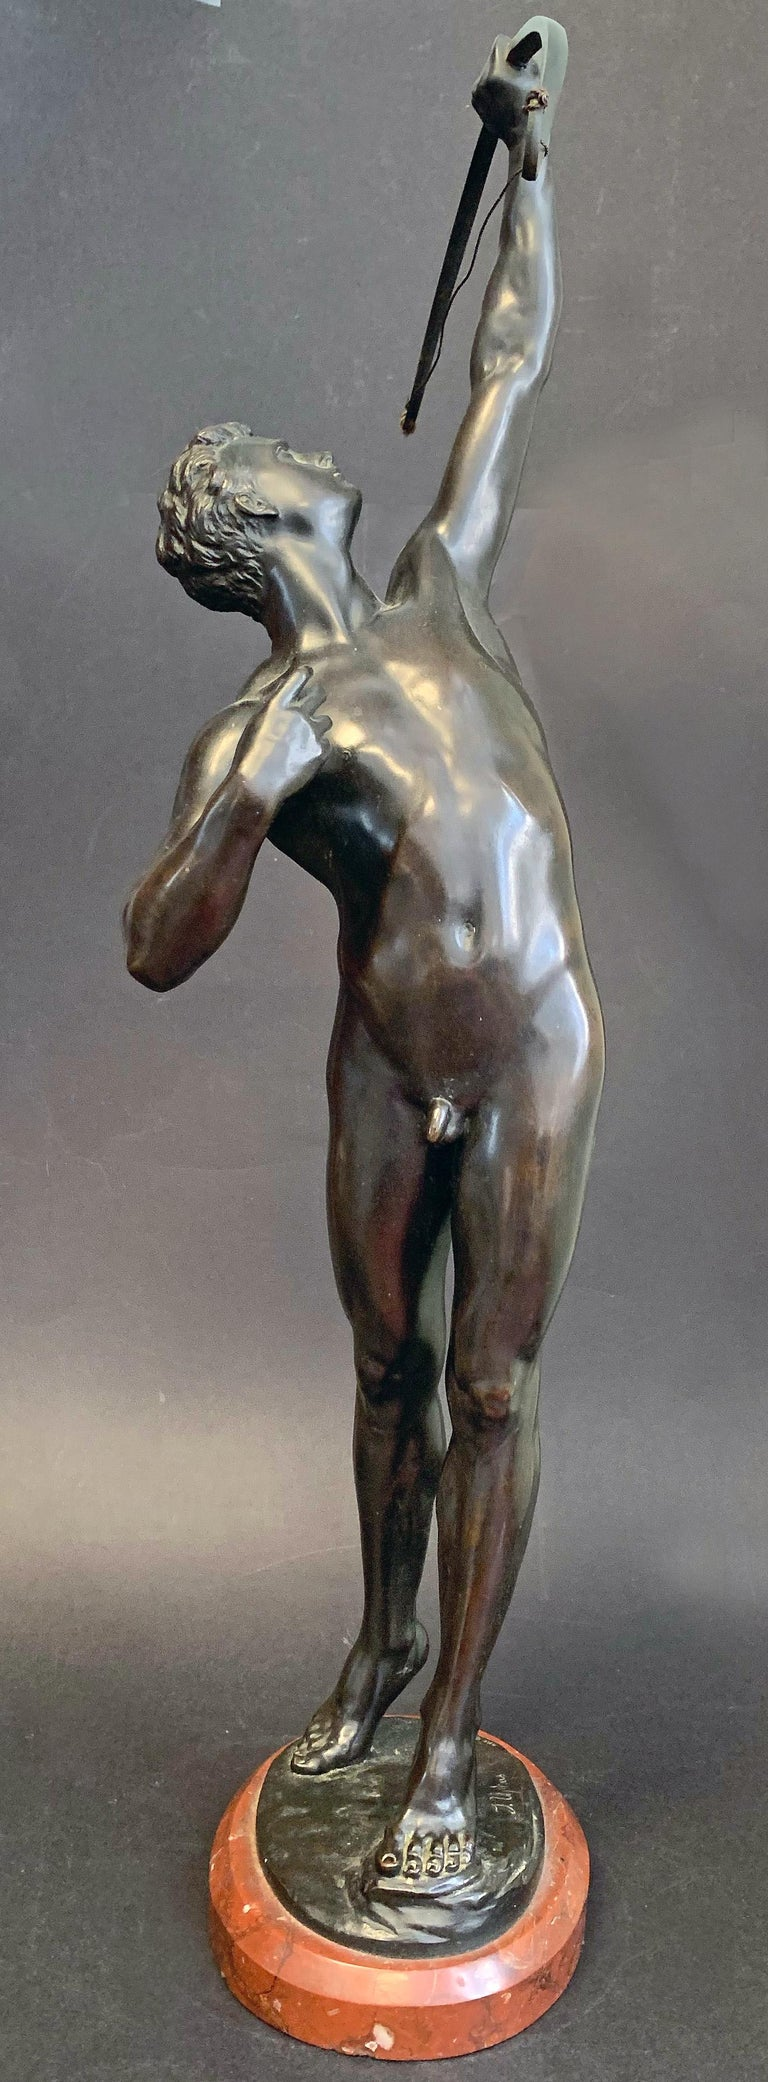 In our opinion, one of the greatest depictions of the male nude in 19th century sculpture, this large bronze by Joseph Uphues depicts a youthful male archer shooting his arrow upwards, no doubt toward a bird overhead. The figure is full of energy